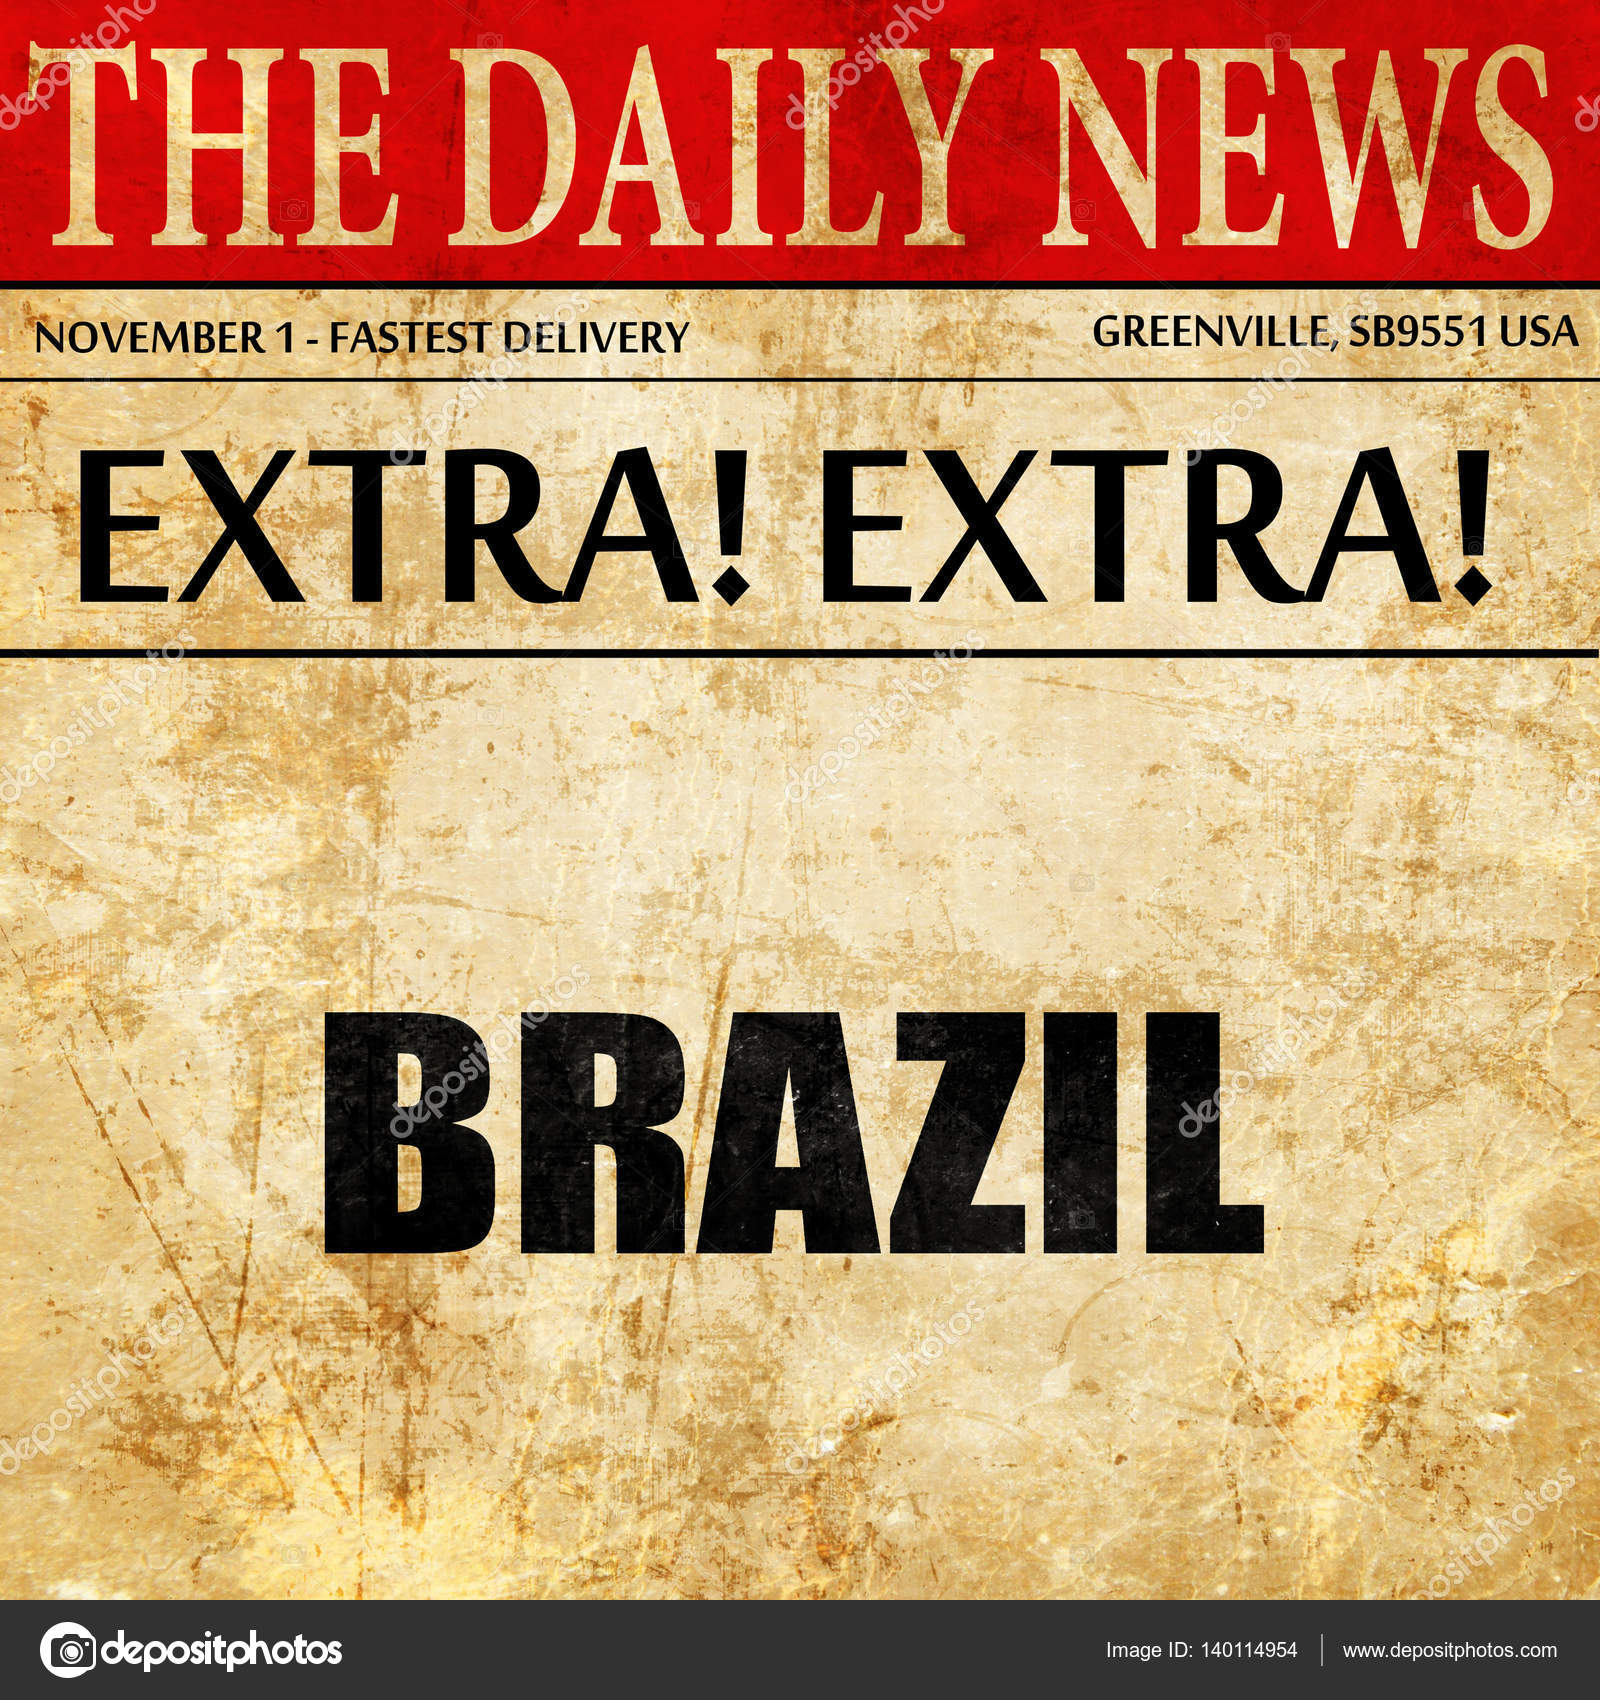 Greetings from brazil newspaper article text stock photo greetings from brazil newspaper article text stock photo m4hsunfo